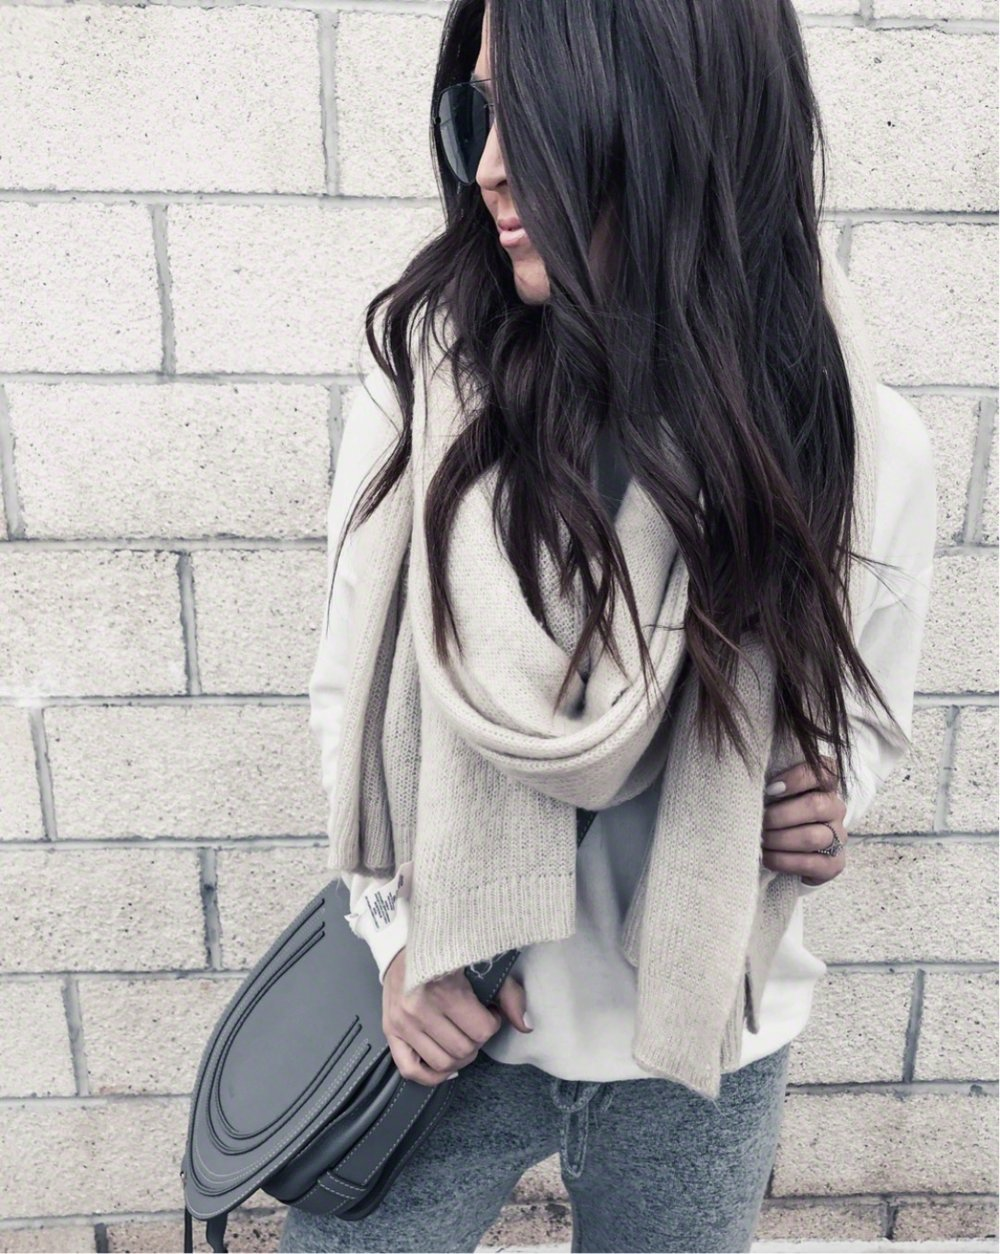 Must Have White Top for Spring | Pine Barren Beauty | winter outfit idea, winter layers, cozy outfit idea, free people scarf, hair goals, chloe bag, athelisure